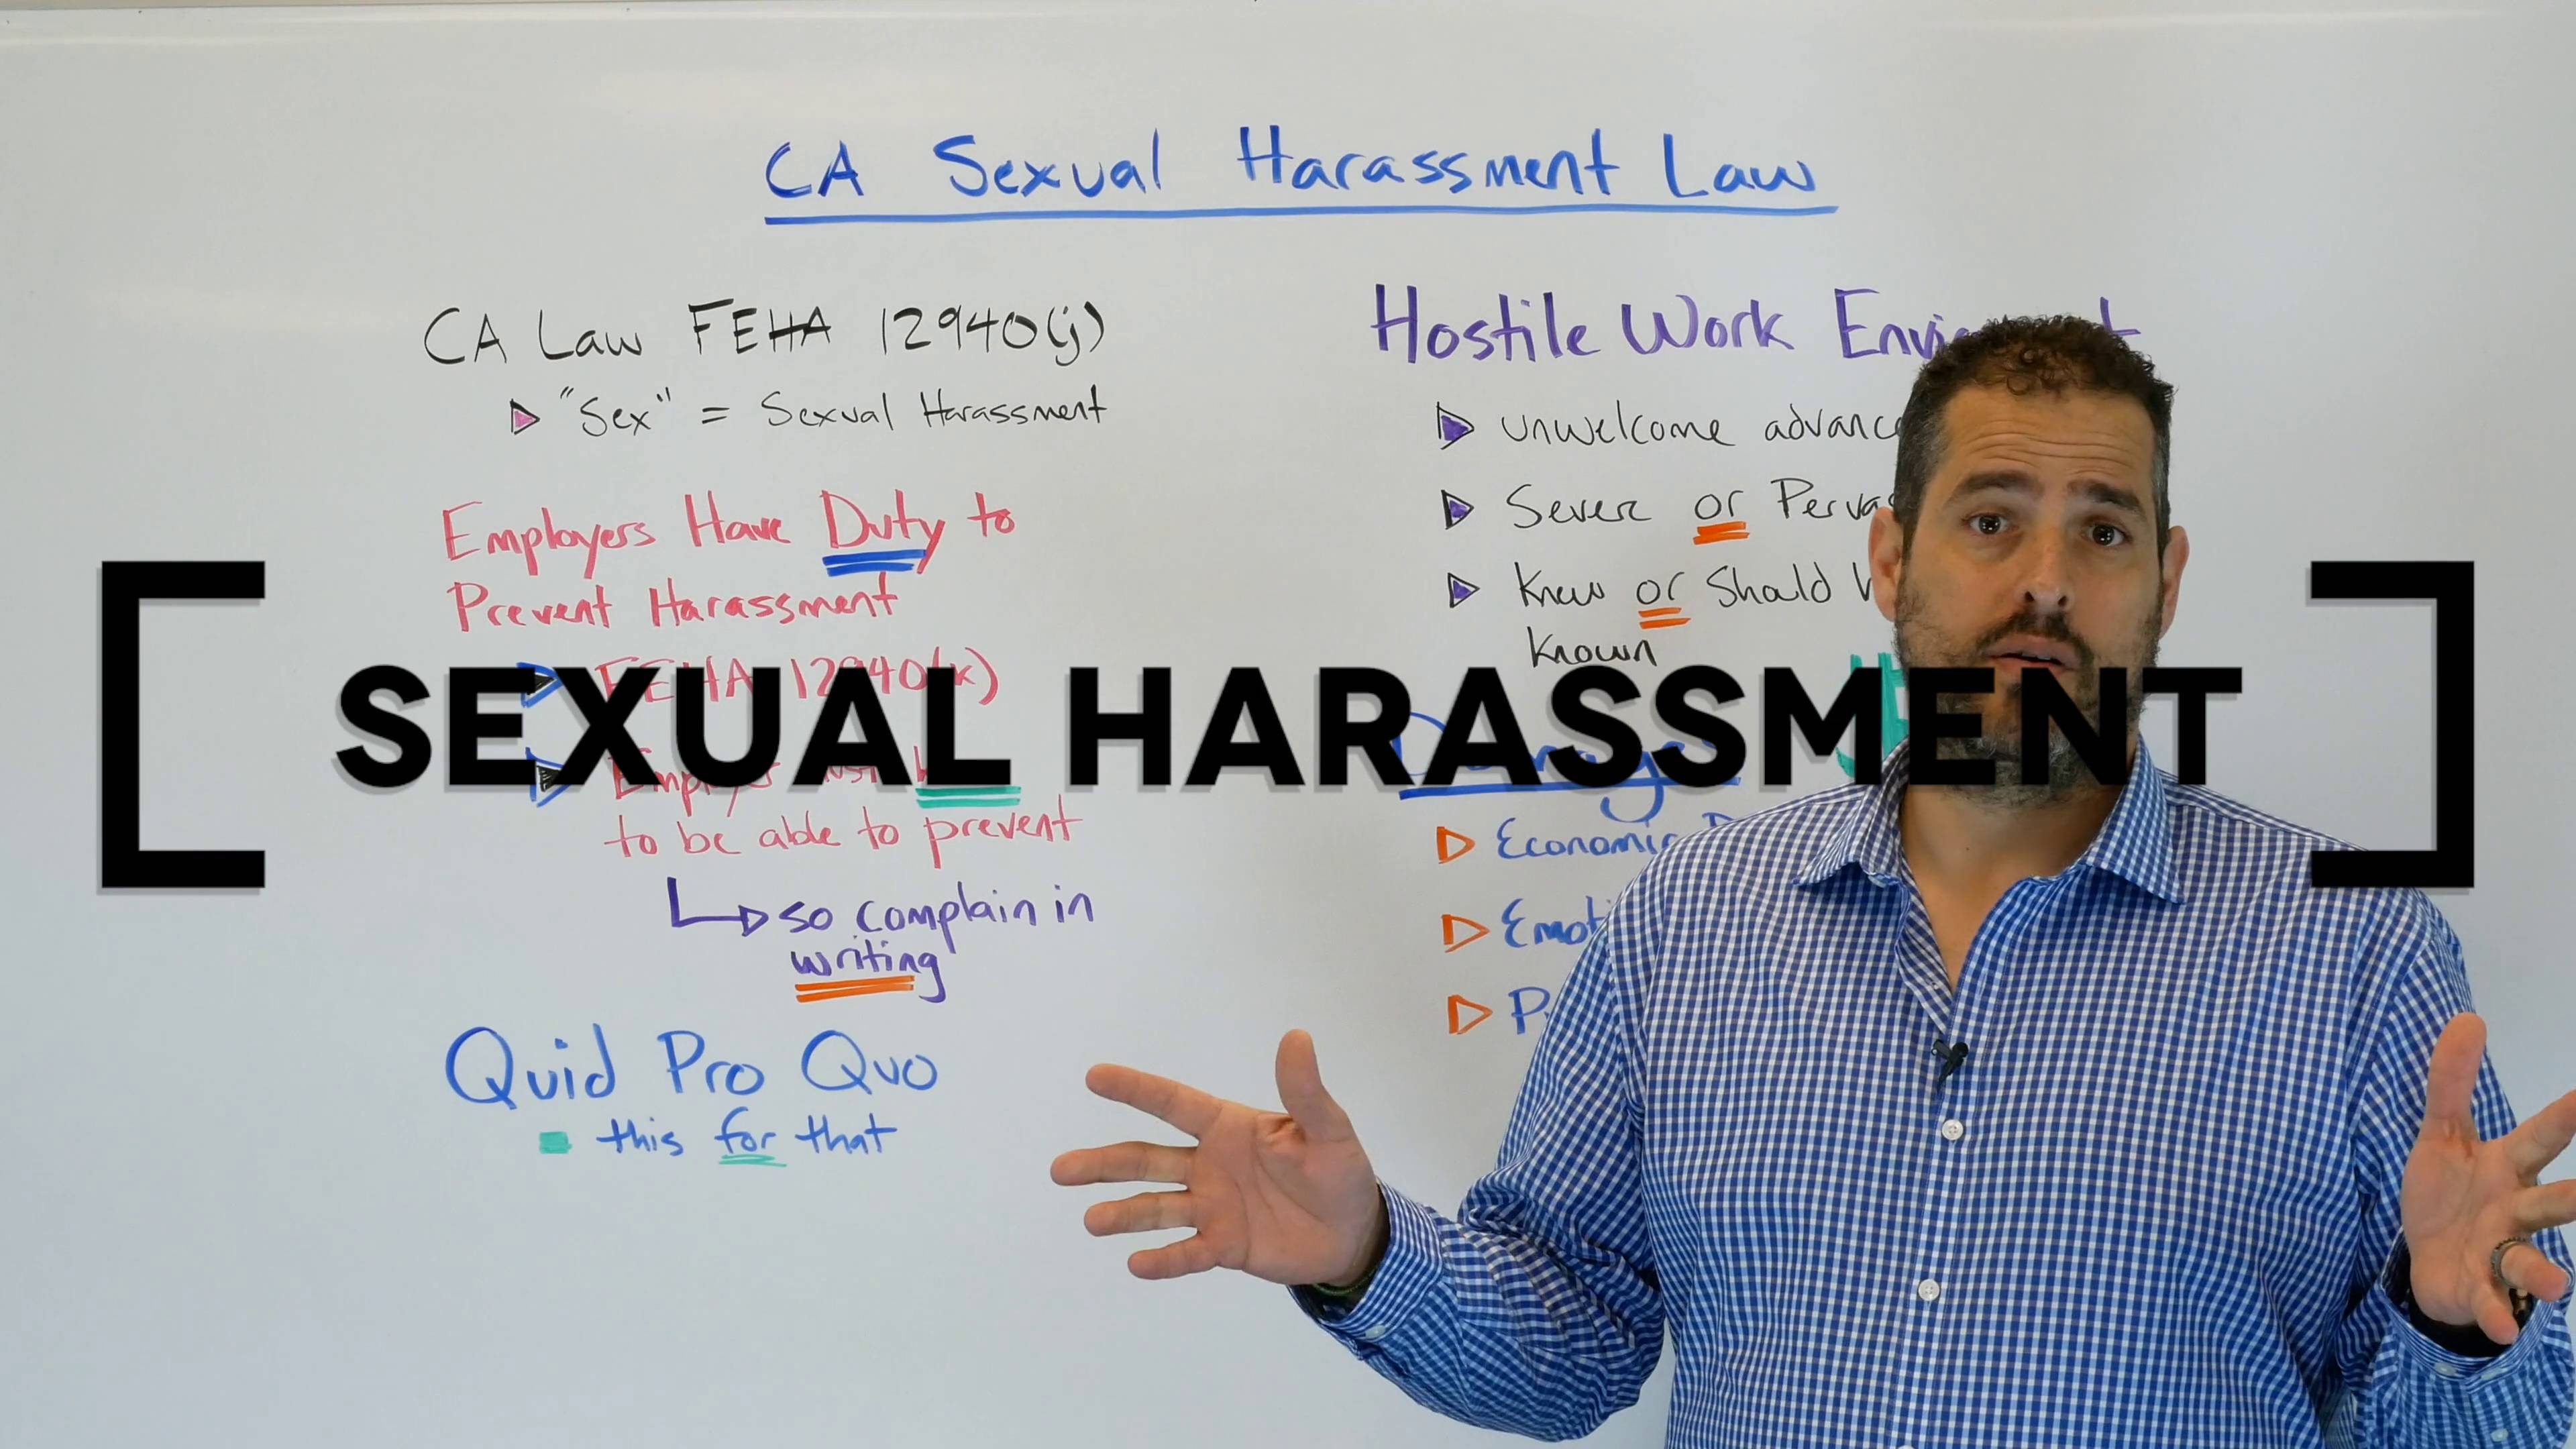 Sexual harassment lawsuit in california